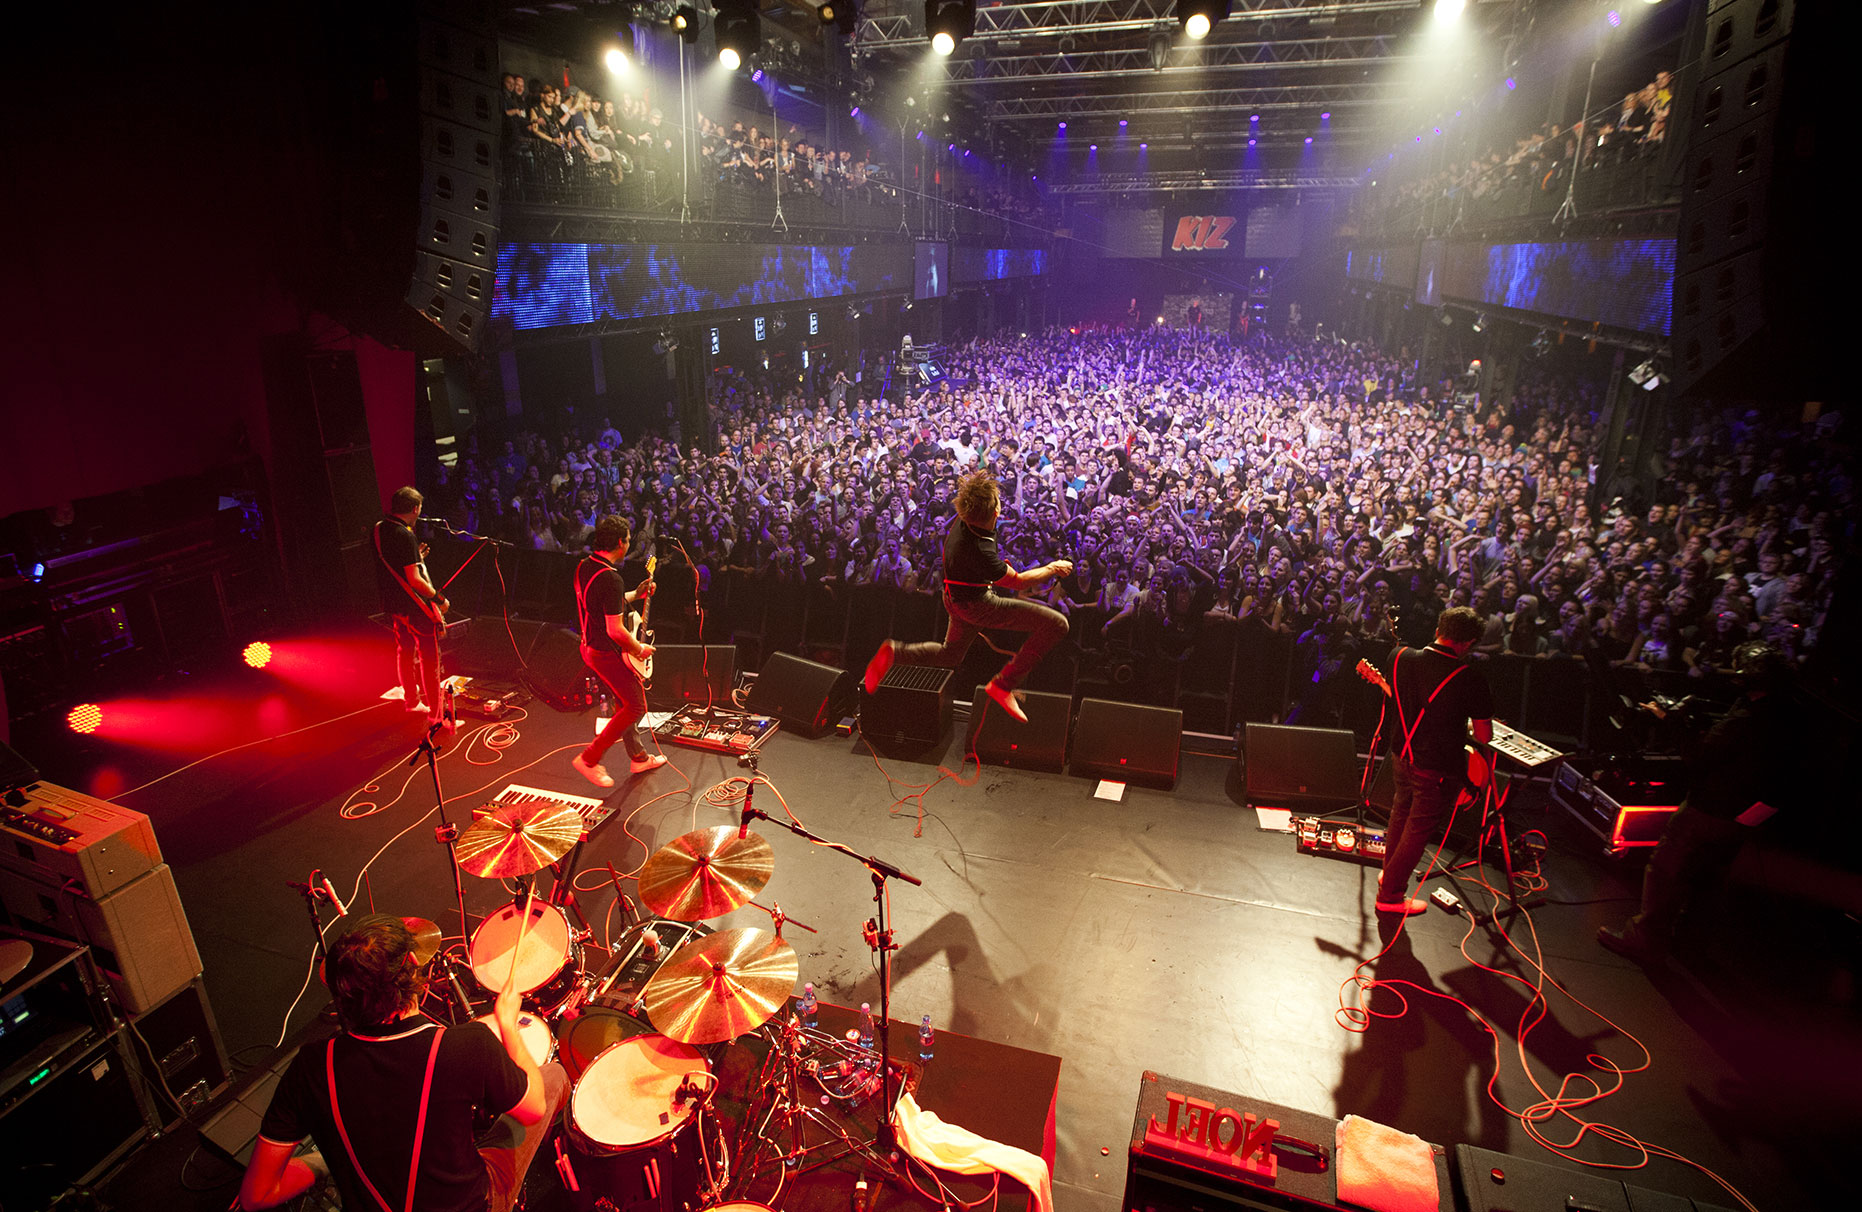 © Dirk Mathesius, Kraftklub performs at the Red Bull Sound Clash at Palladium in Cologne, Germany on December 07th, 2012